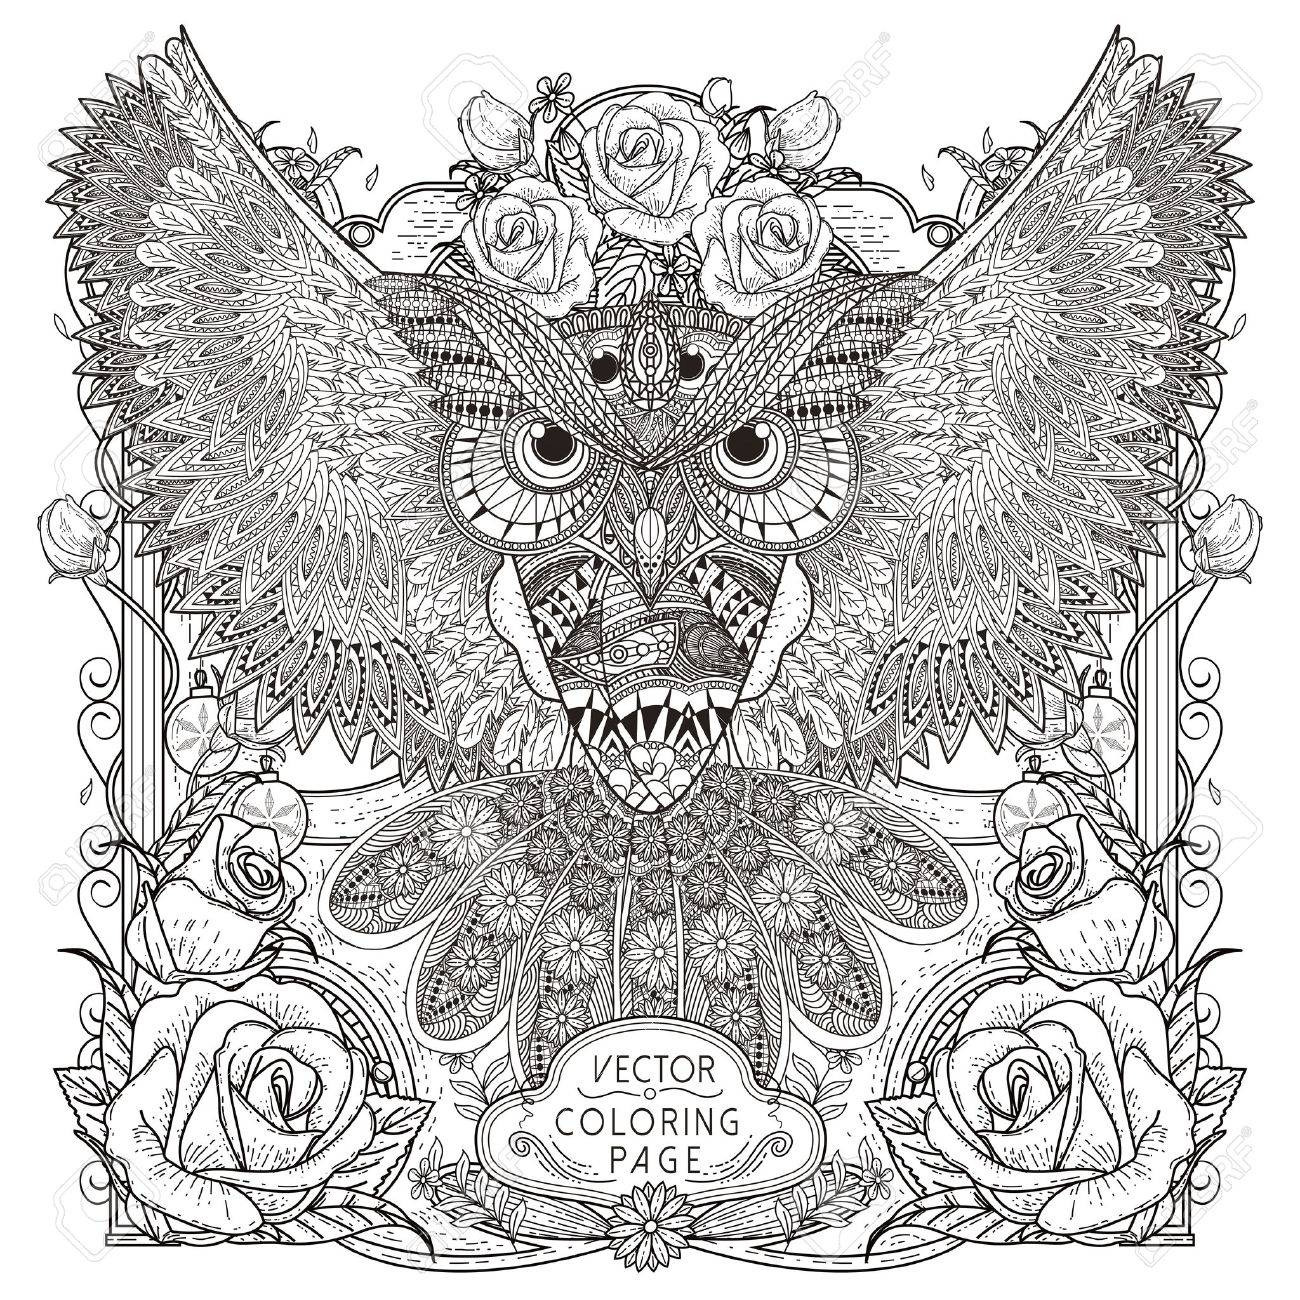 Coloring pages for down syndrome adults - Adult Gorgeous Owl Coloring Page Design In Exquisite Style